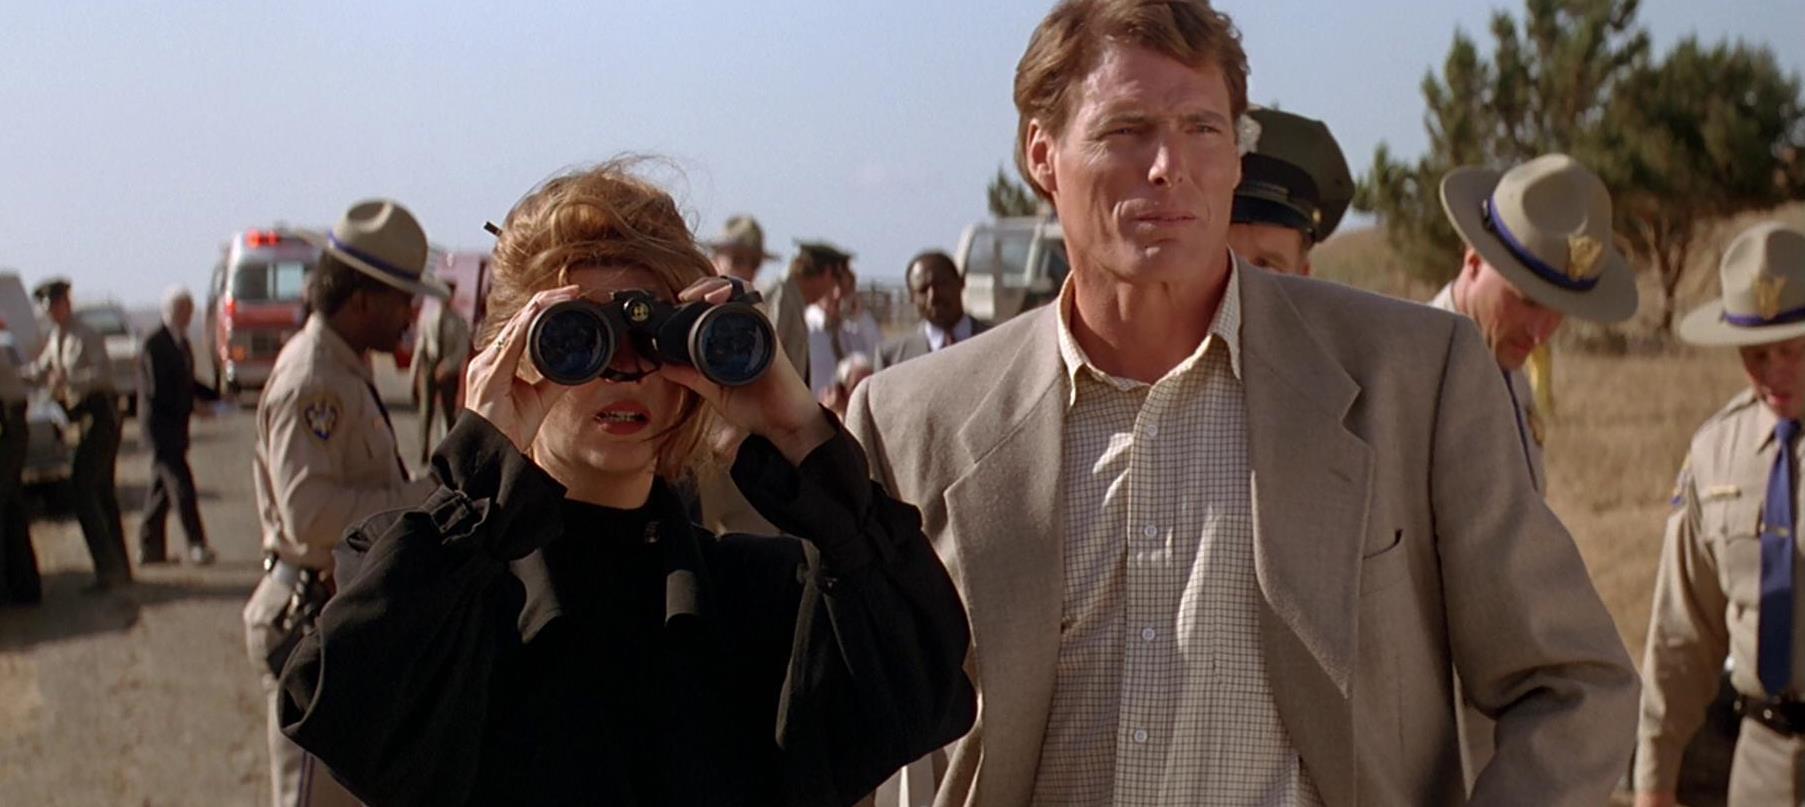 Christopher Reeve and Kirstie Alley (behind binoculars) watch from the military cordon line in Village of the Damned (1995)